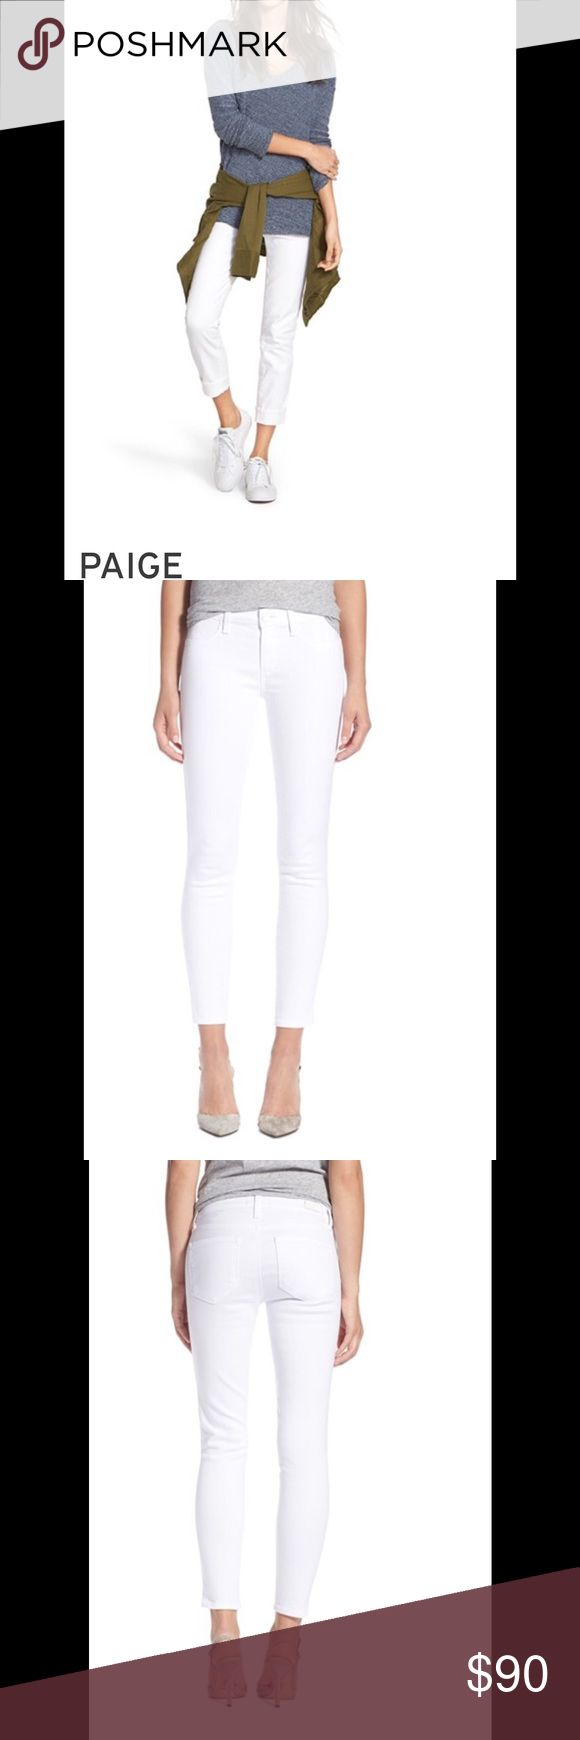 NWT-PAIGE WHITE SKINNY'S Beautiful figure skimming Paige white denim. Light with great coverage. Excellently flatters the figure. Great investment! ✅Price is firm but can be discounted with a bundle. 🚫No Trades. Paige Jeans Jeans Skinny